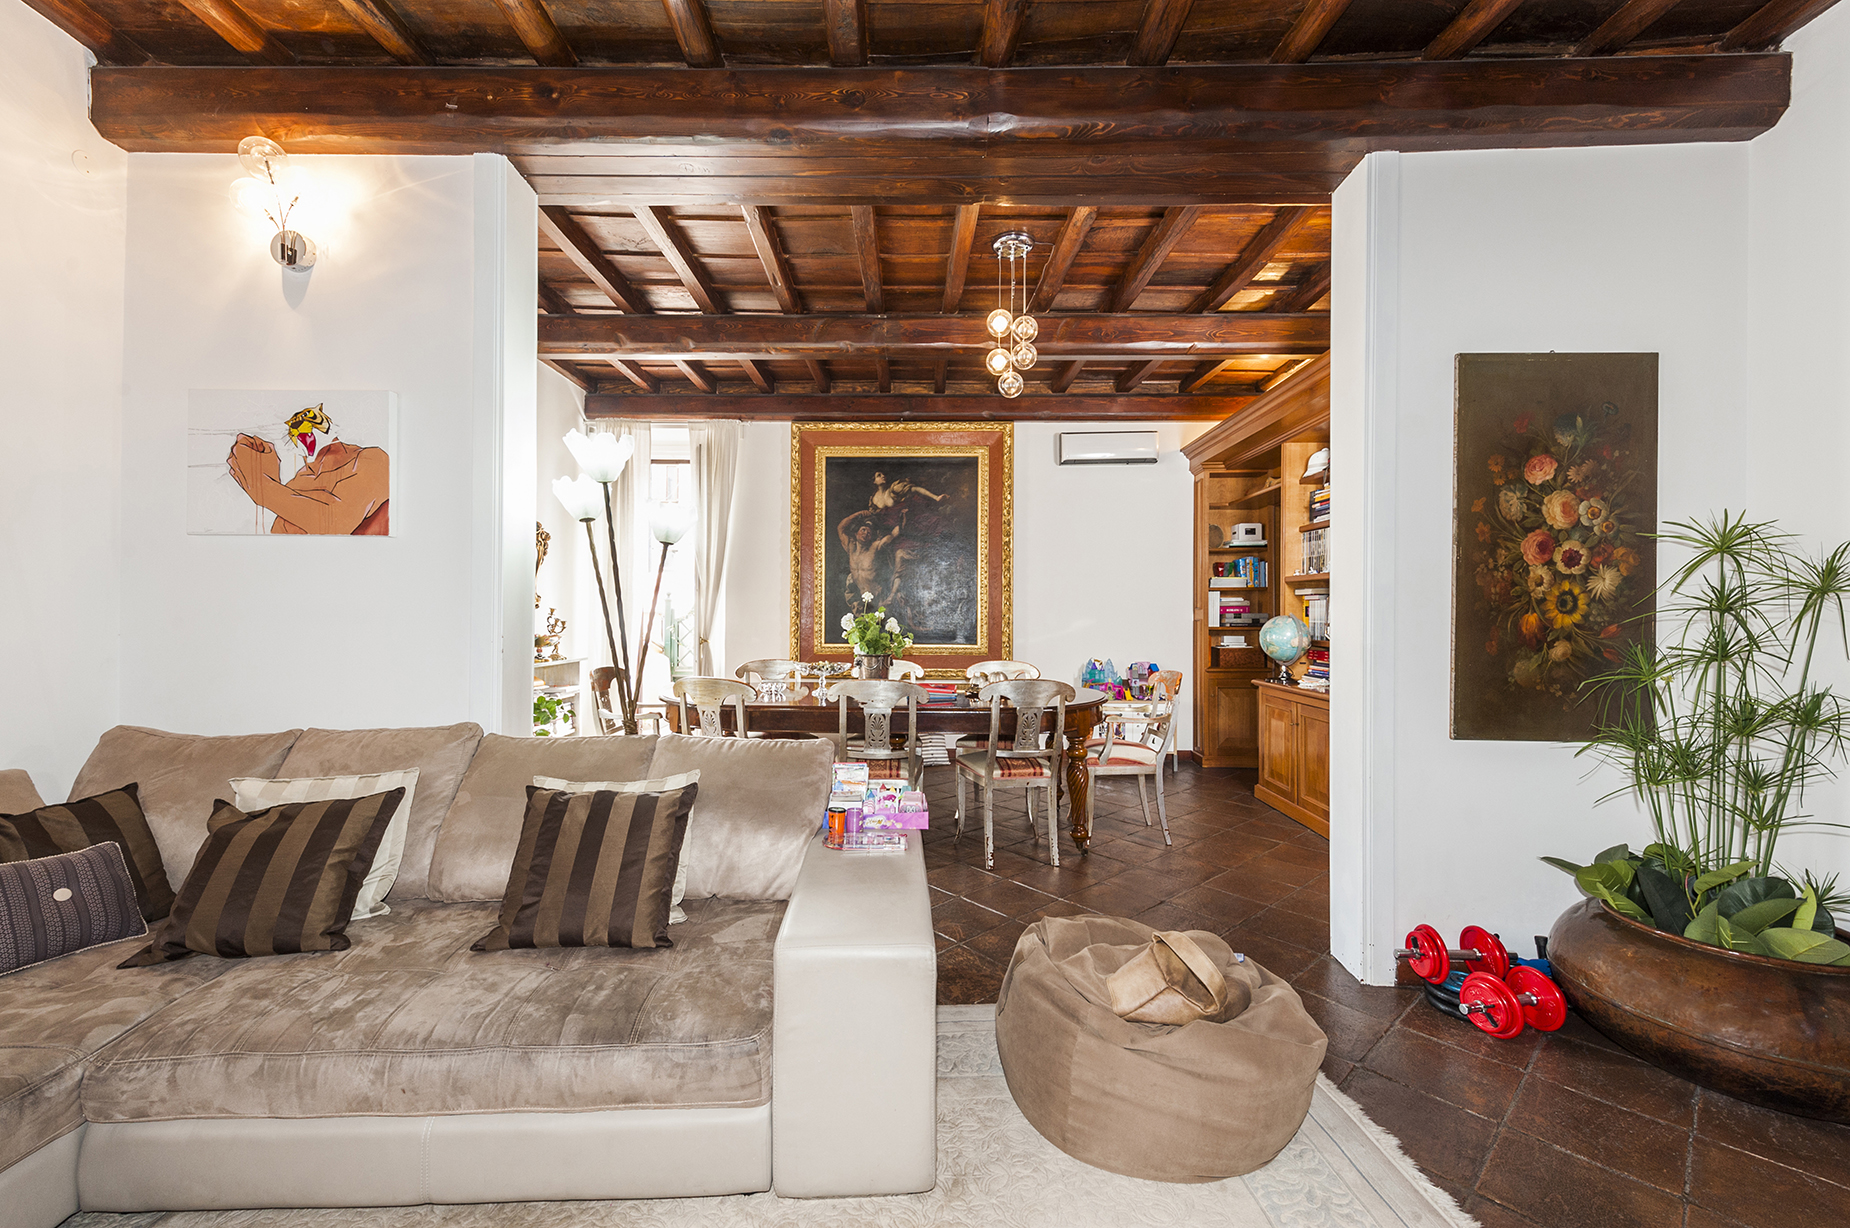 Charming apartment near Fontana di Trevi